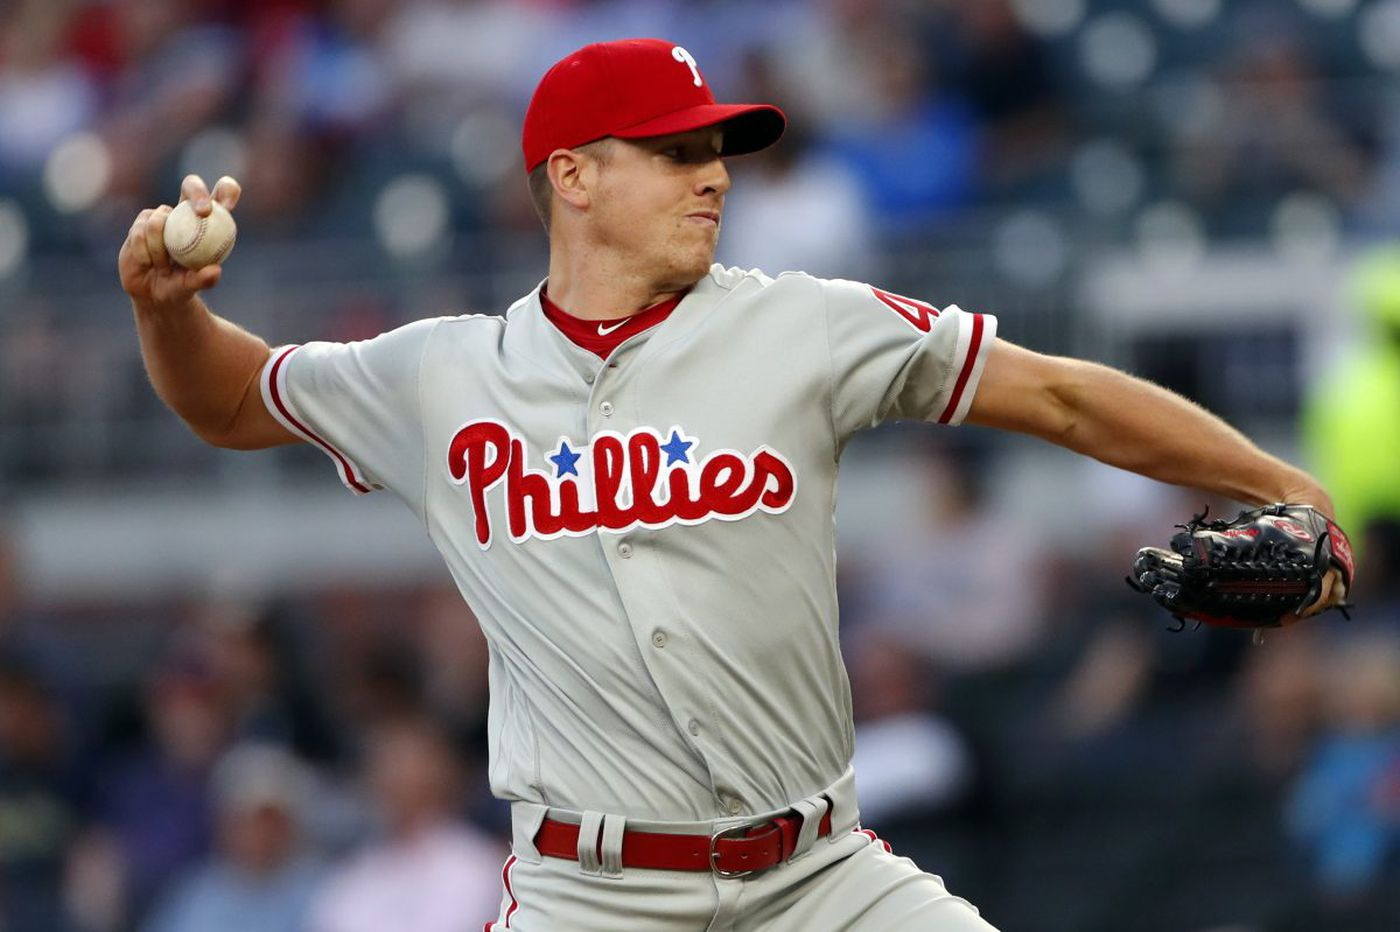 Phillies assured first winning road trip since 2016 | Extra Innings